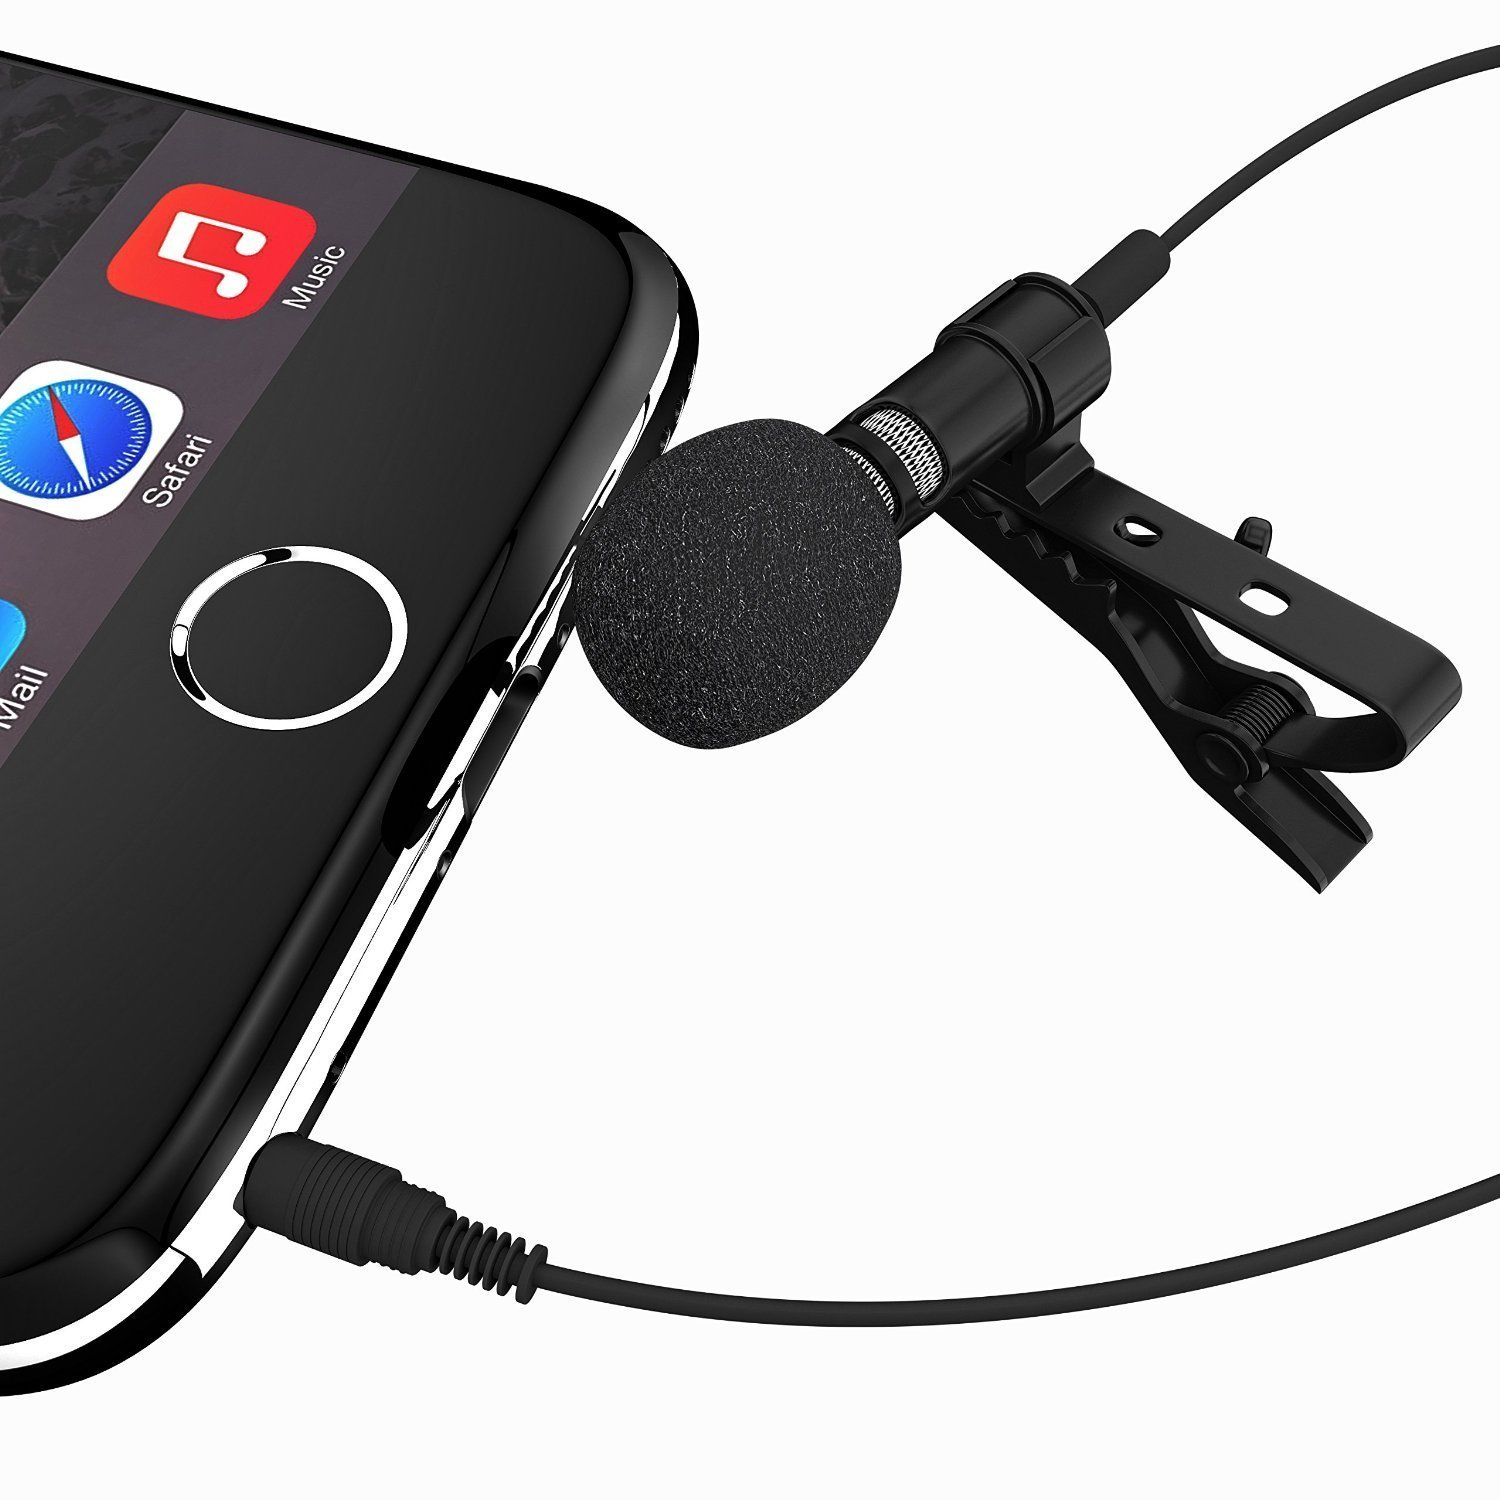 Alemon Lavalier Lapel Microphone 3.5mm TRRS Plug Clip-on Omnidirectional Condenser Microphone for iPhone, iPad, iPod Touch, Android and Windows Smartphones,Youtube,Interviews ALM-300